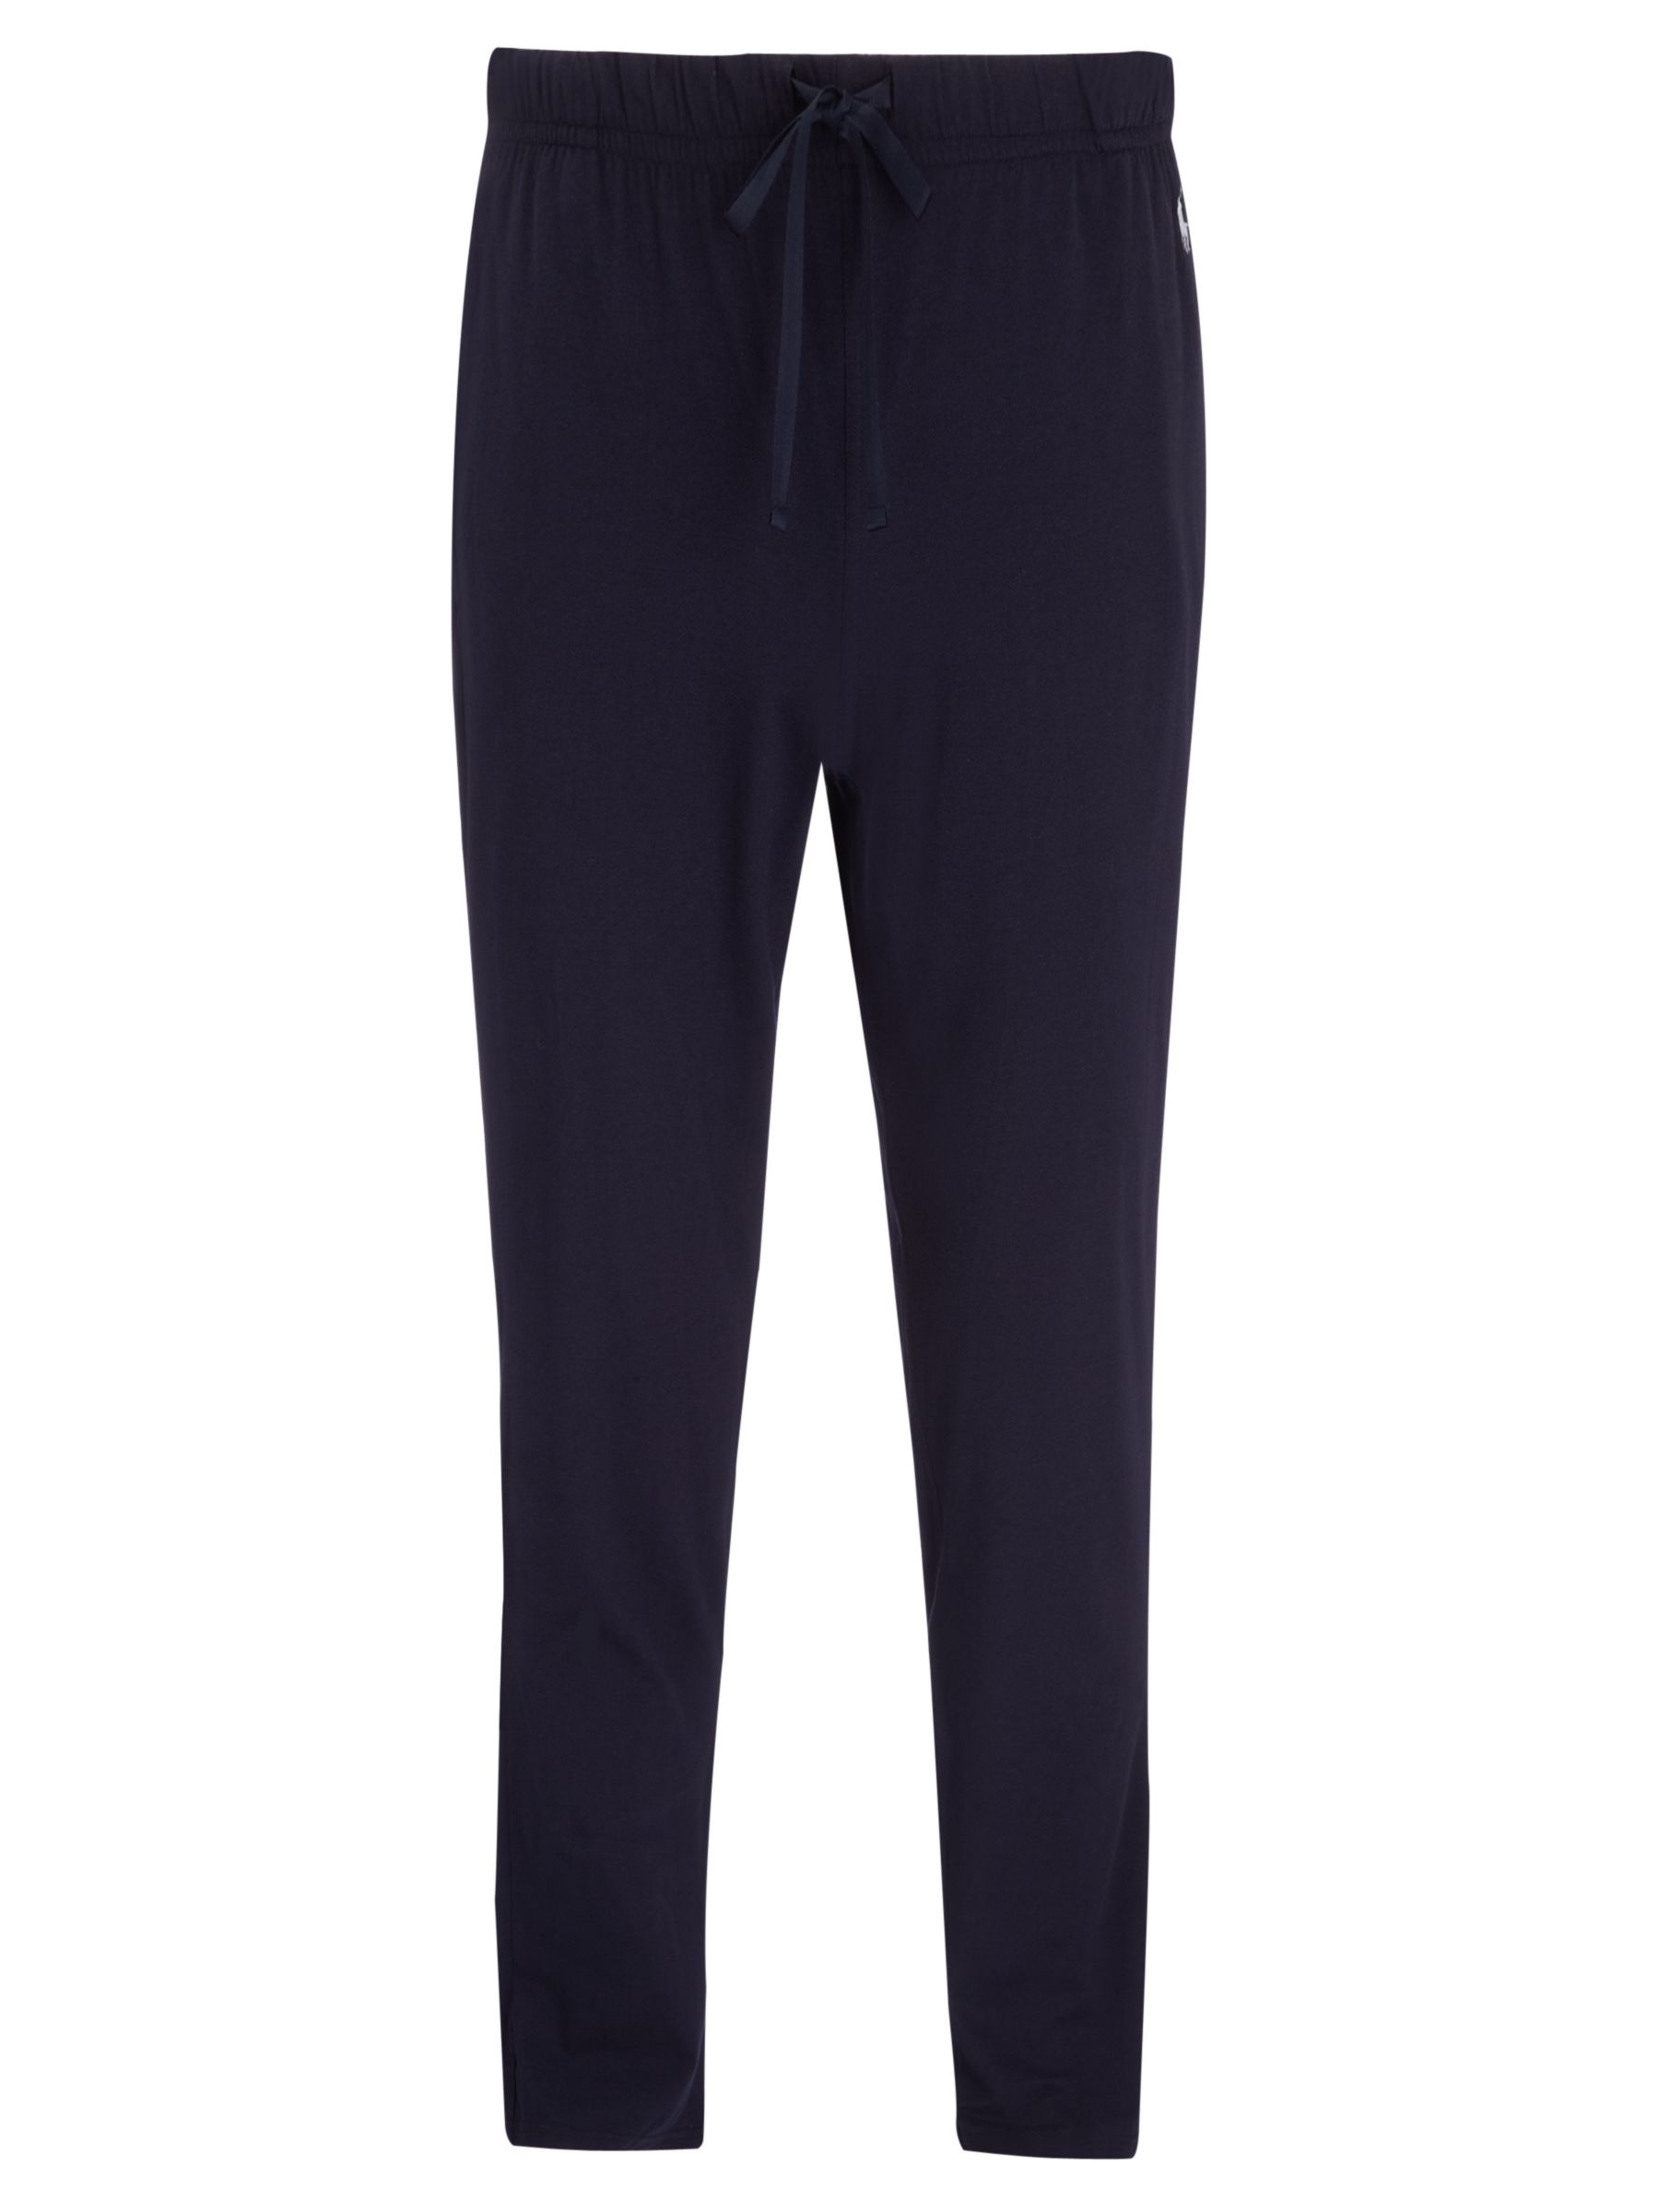 Polo Ralph Lauren Lounge Pants